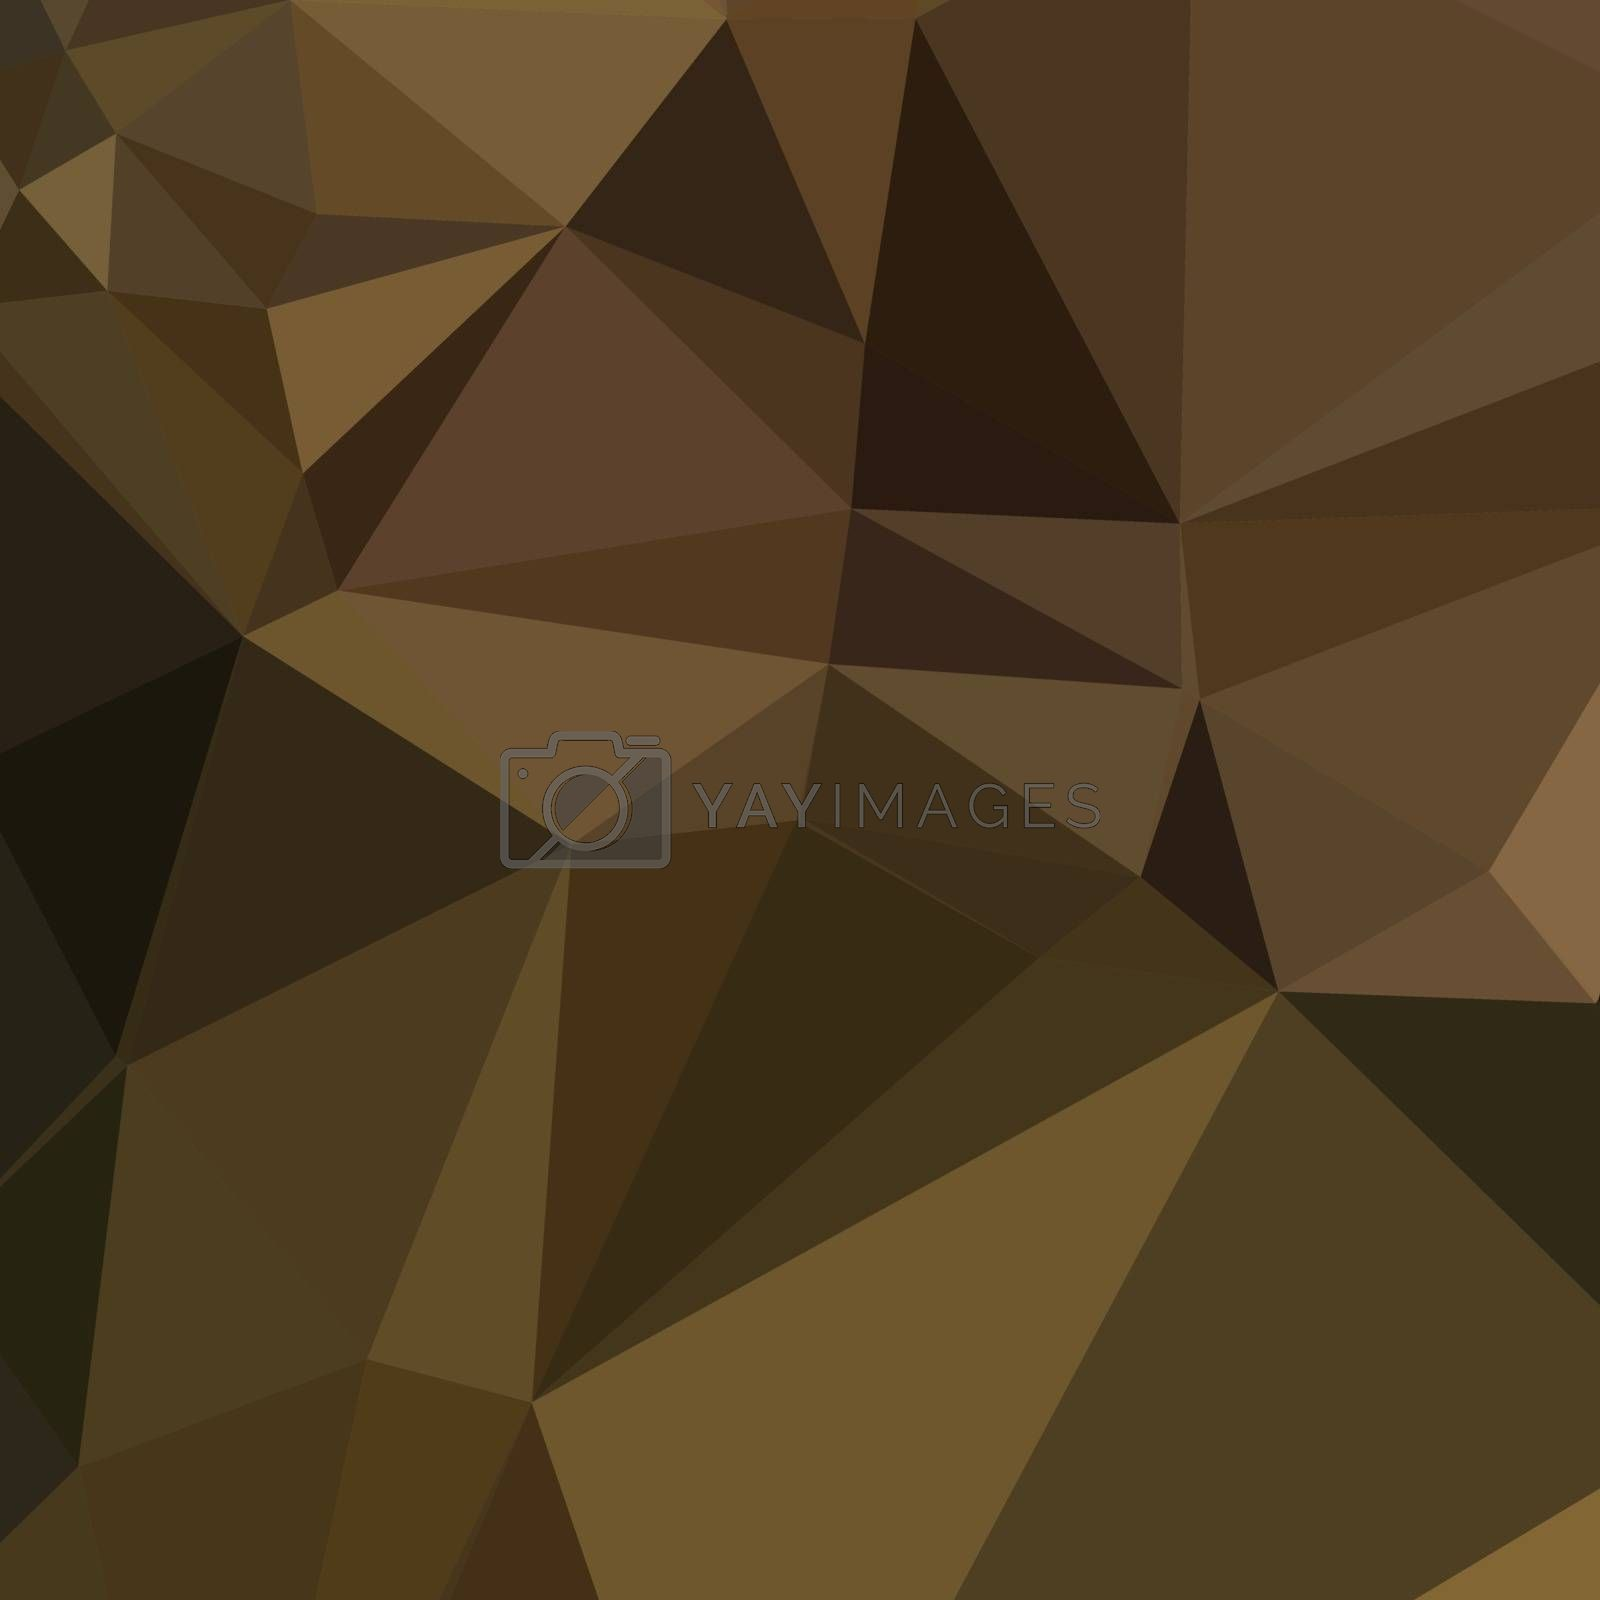 Low polygon style illustration of a carput mortuum brown abstract geometric background.